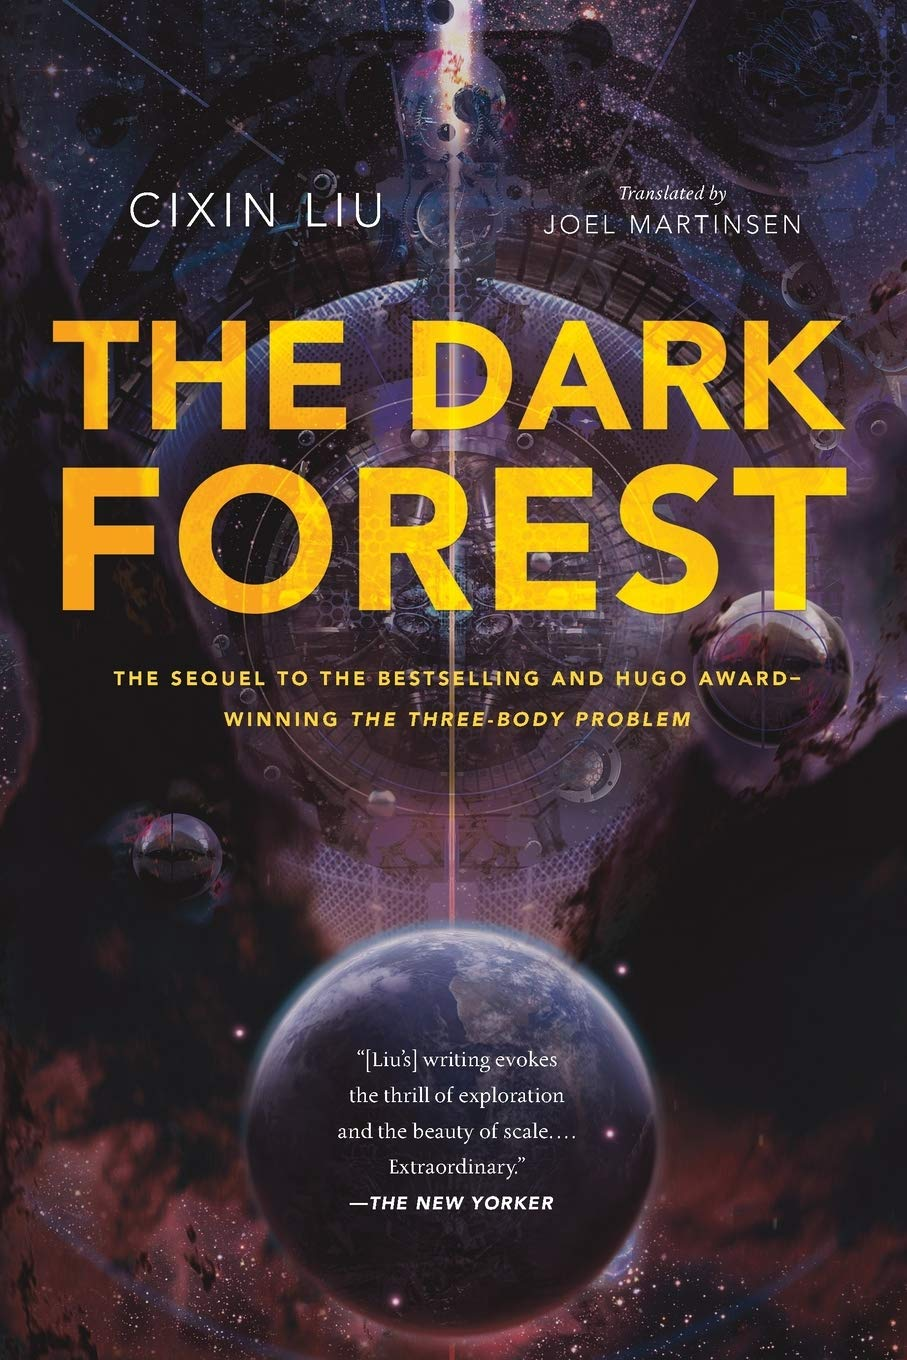 The Dark Forest book cover